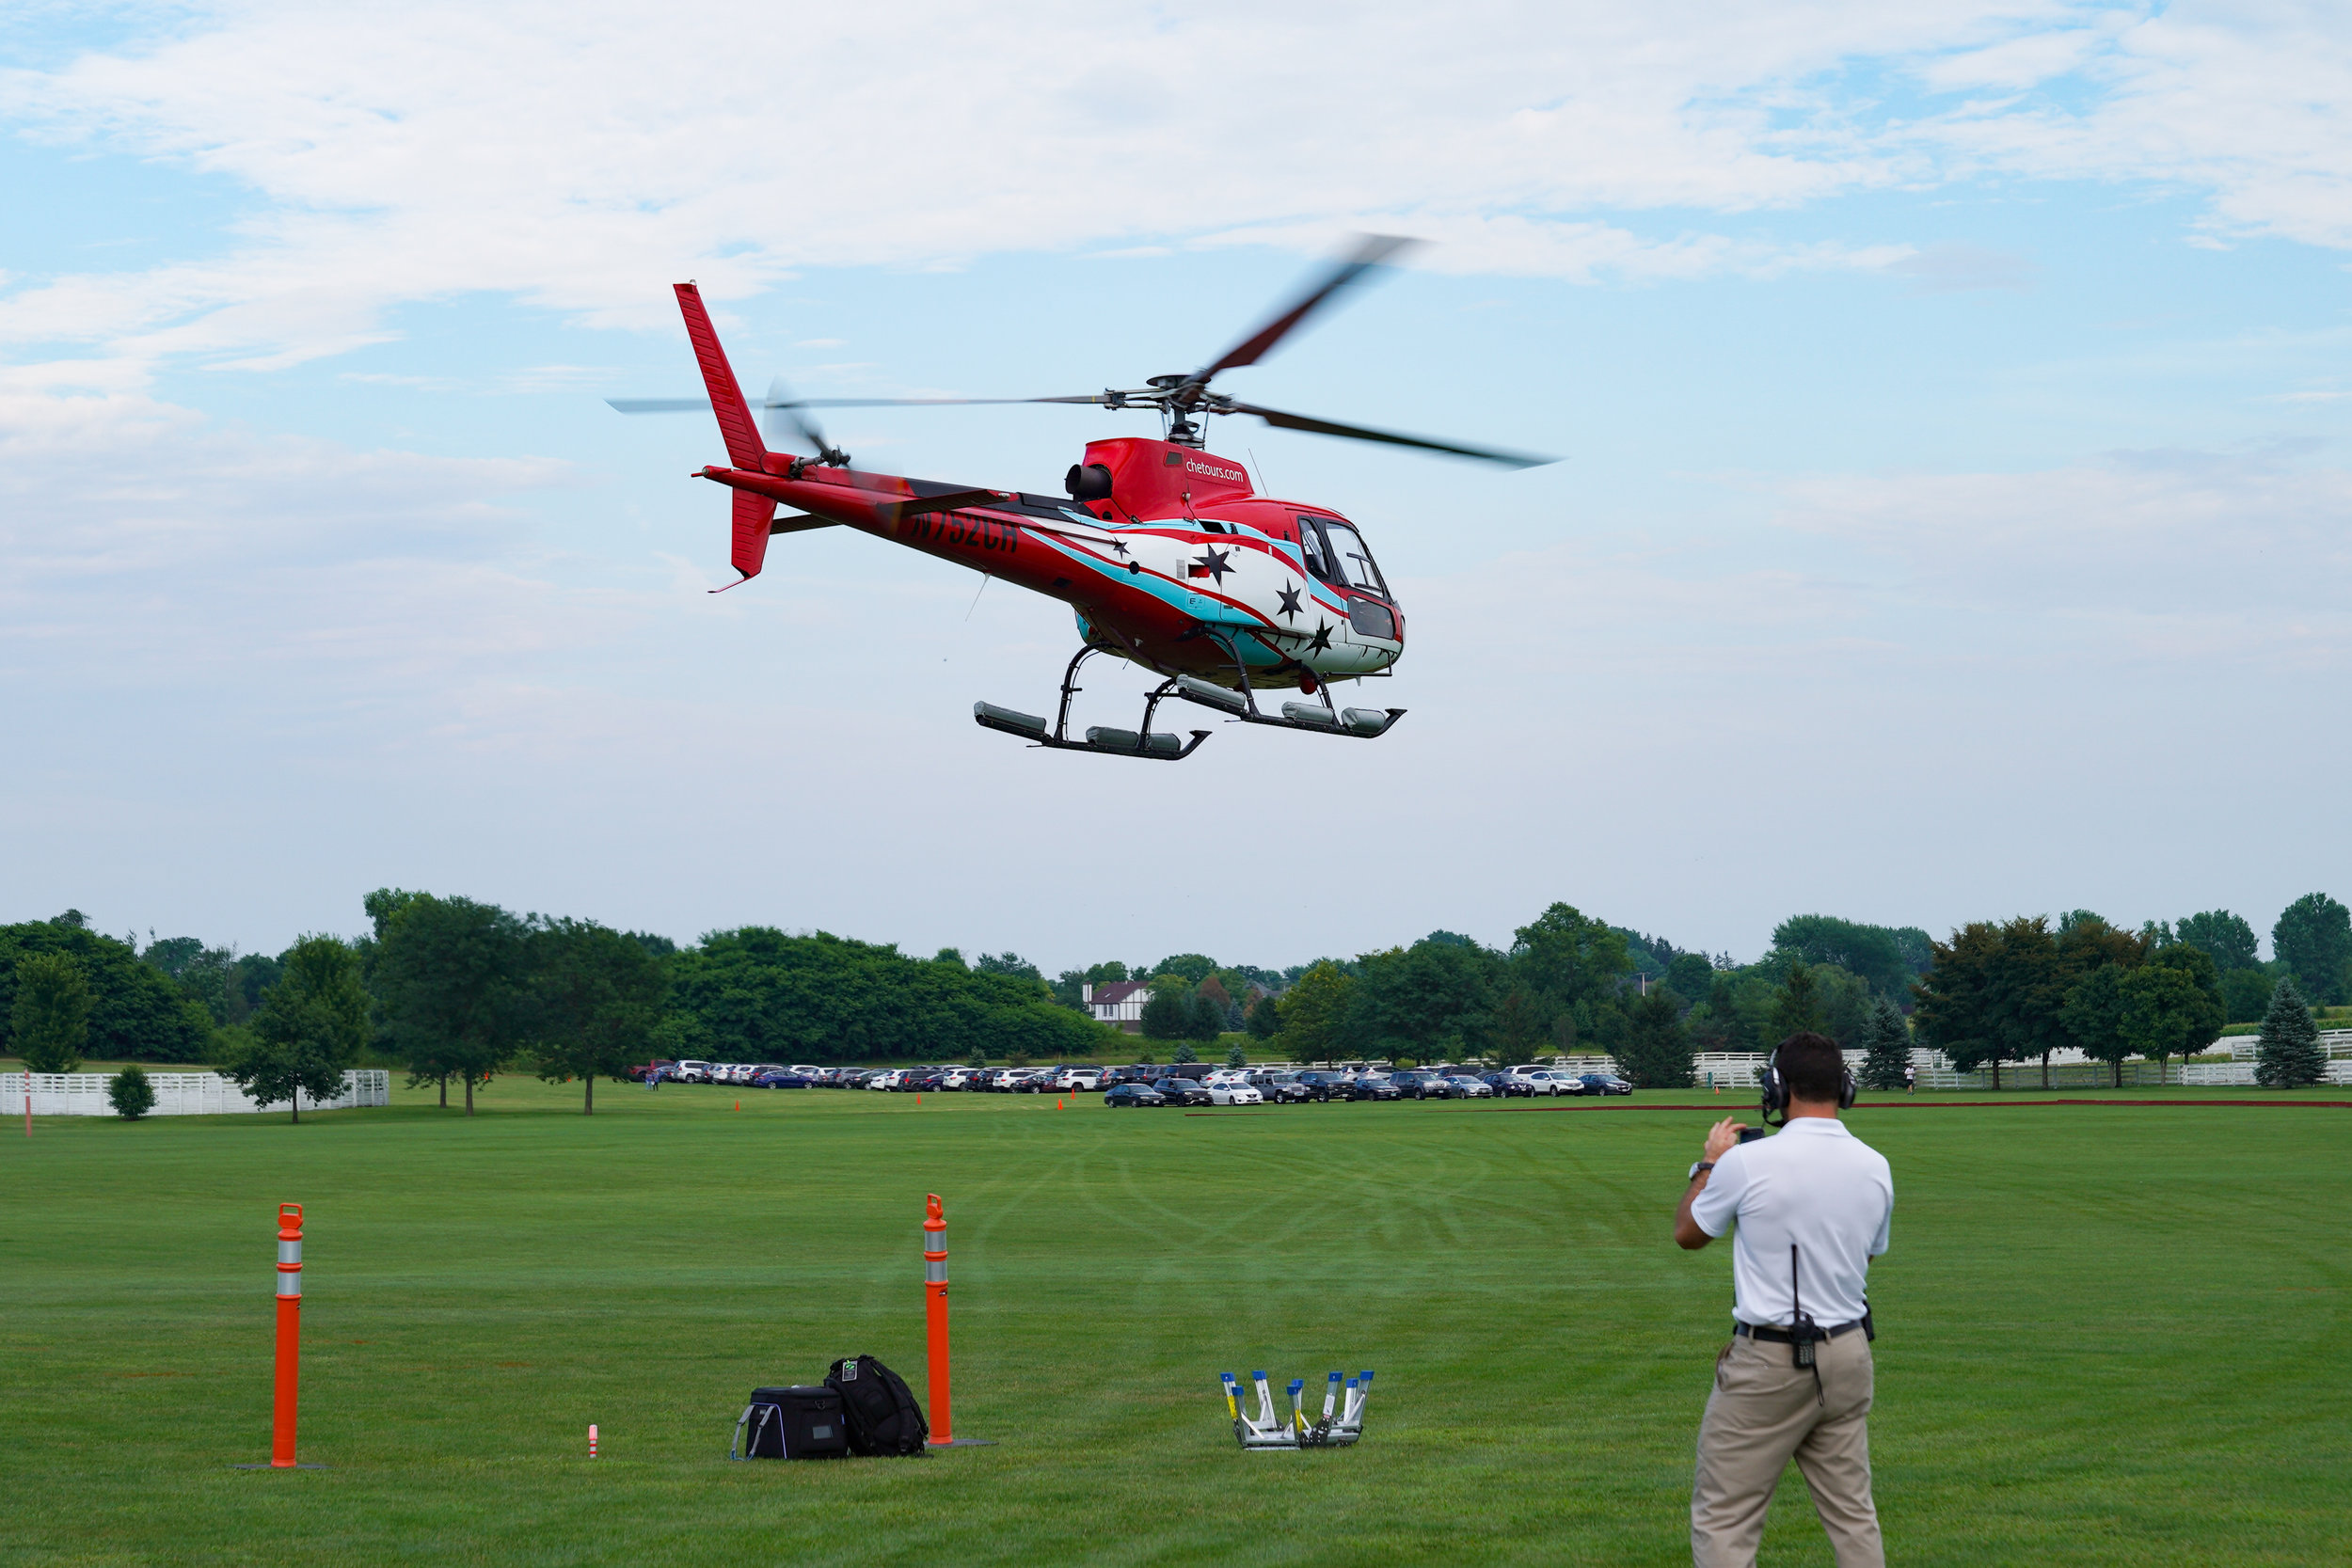 Chicago Helicopter Experience had concert goers transported in style from Chicago to Arranmore.